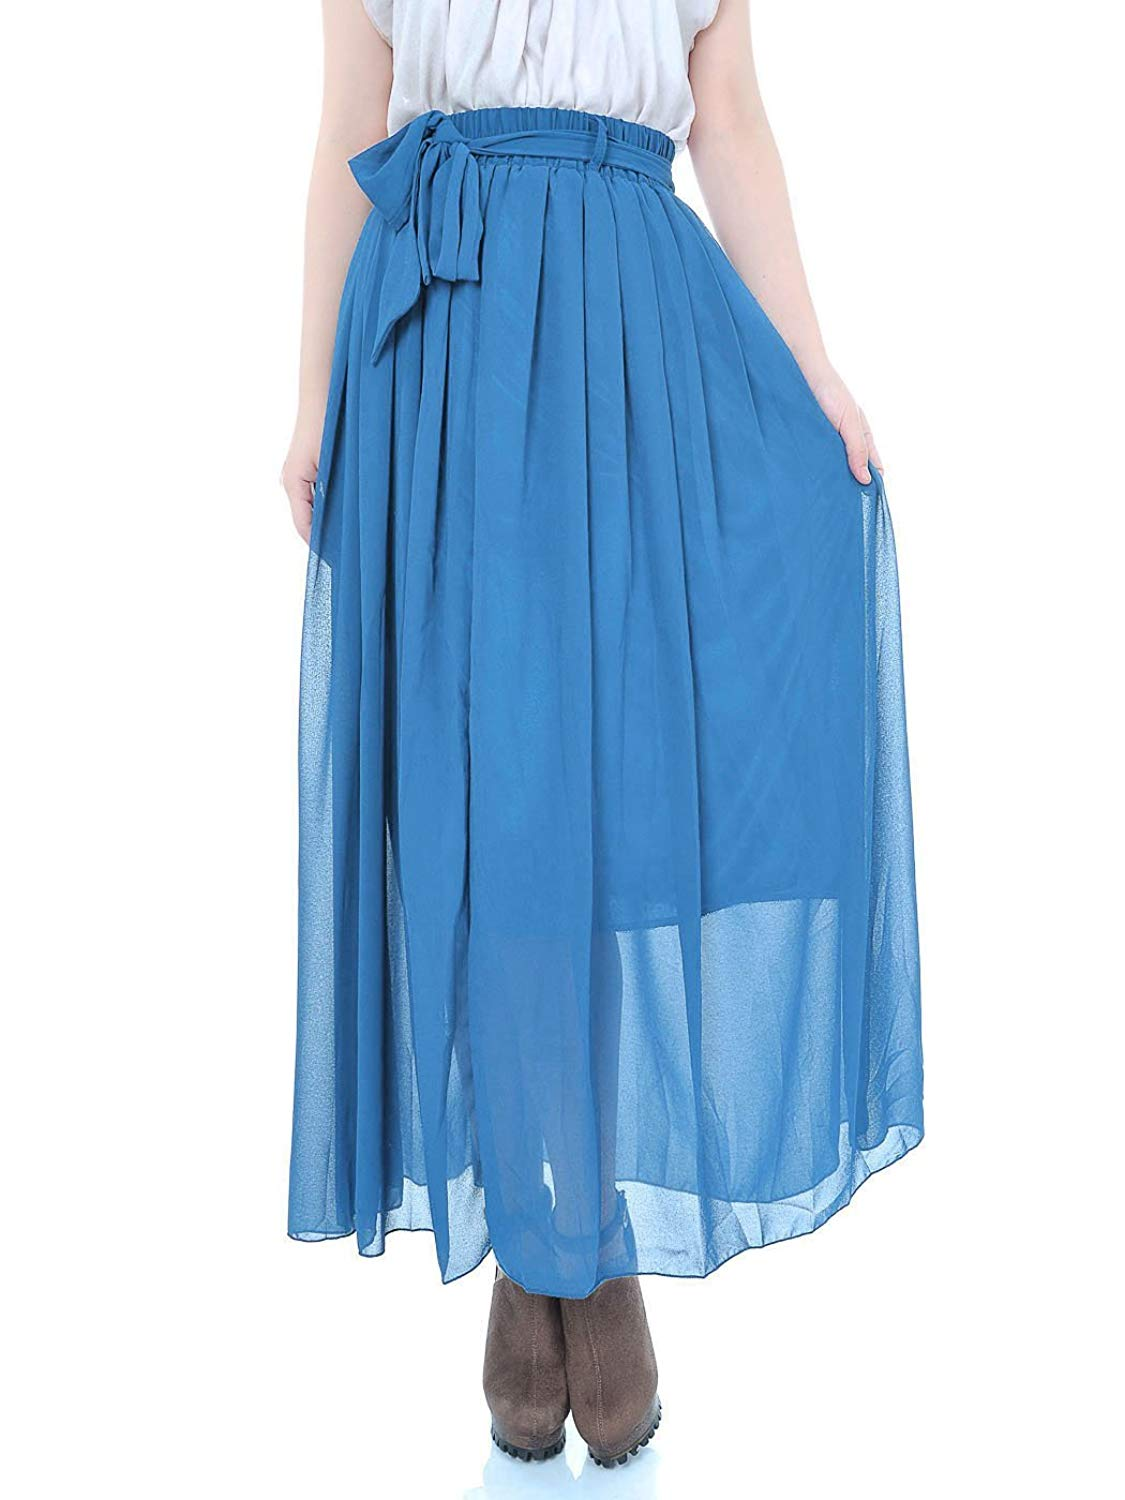 d7c27100a Get Quotations · Anna-K S/M Fit Royal Blue Semi Sheer Chiffon Matching  Ribbon Sash Maxi